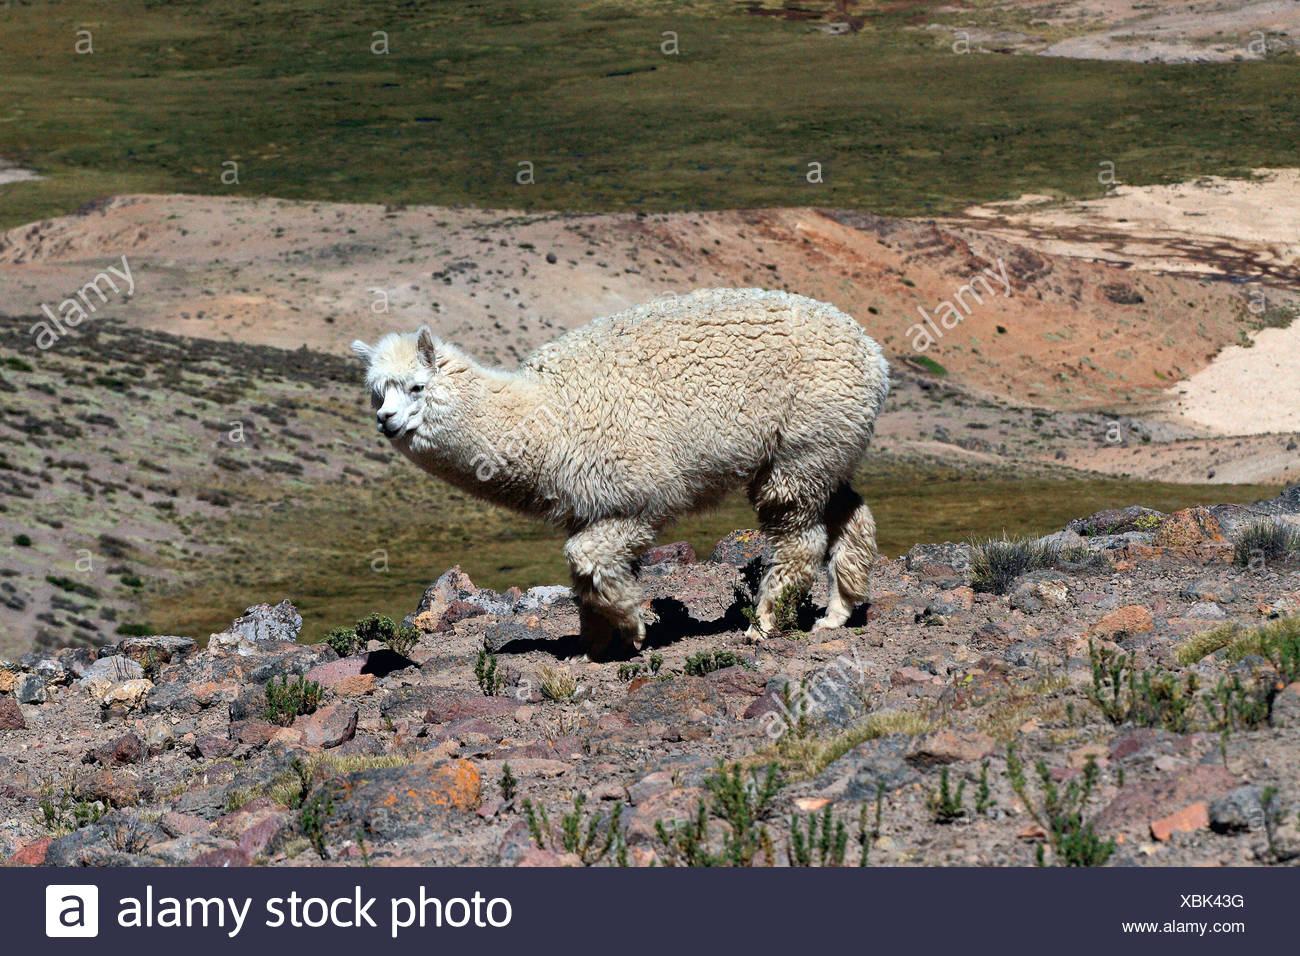 Alpacas, animals that adapt well to the cold of Andes, are bred for their wool and for their meat South America - Stock Image